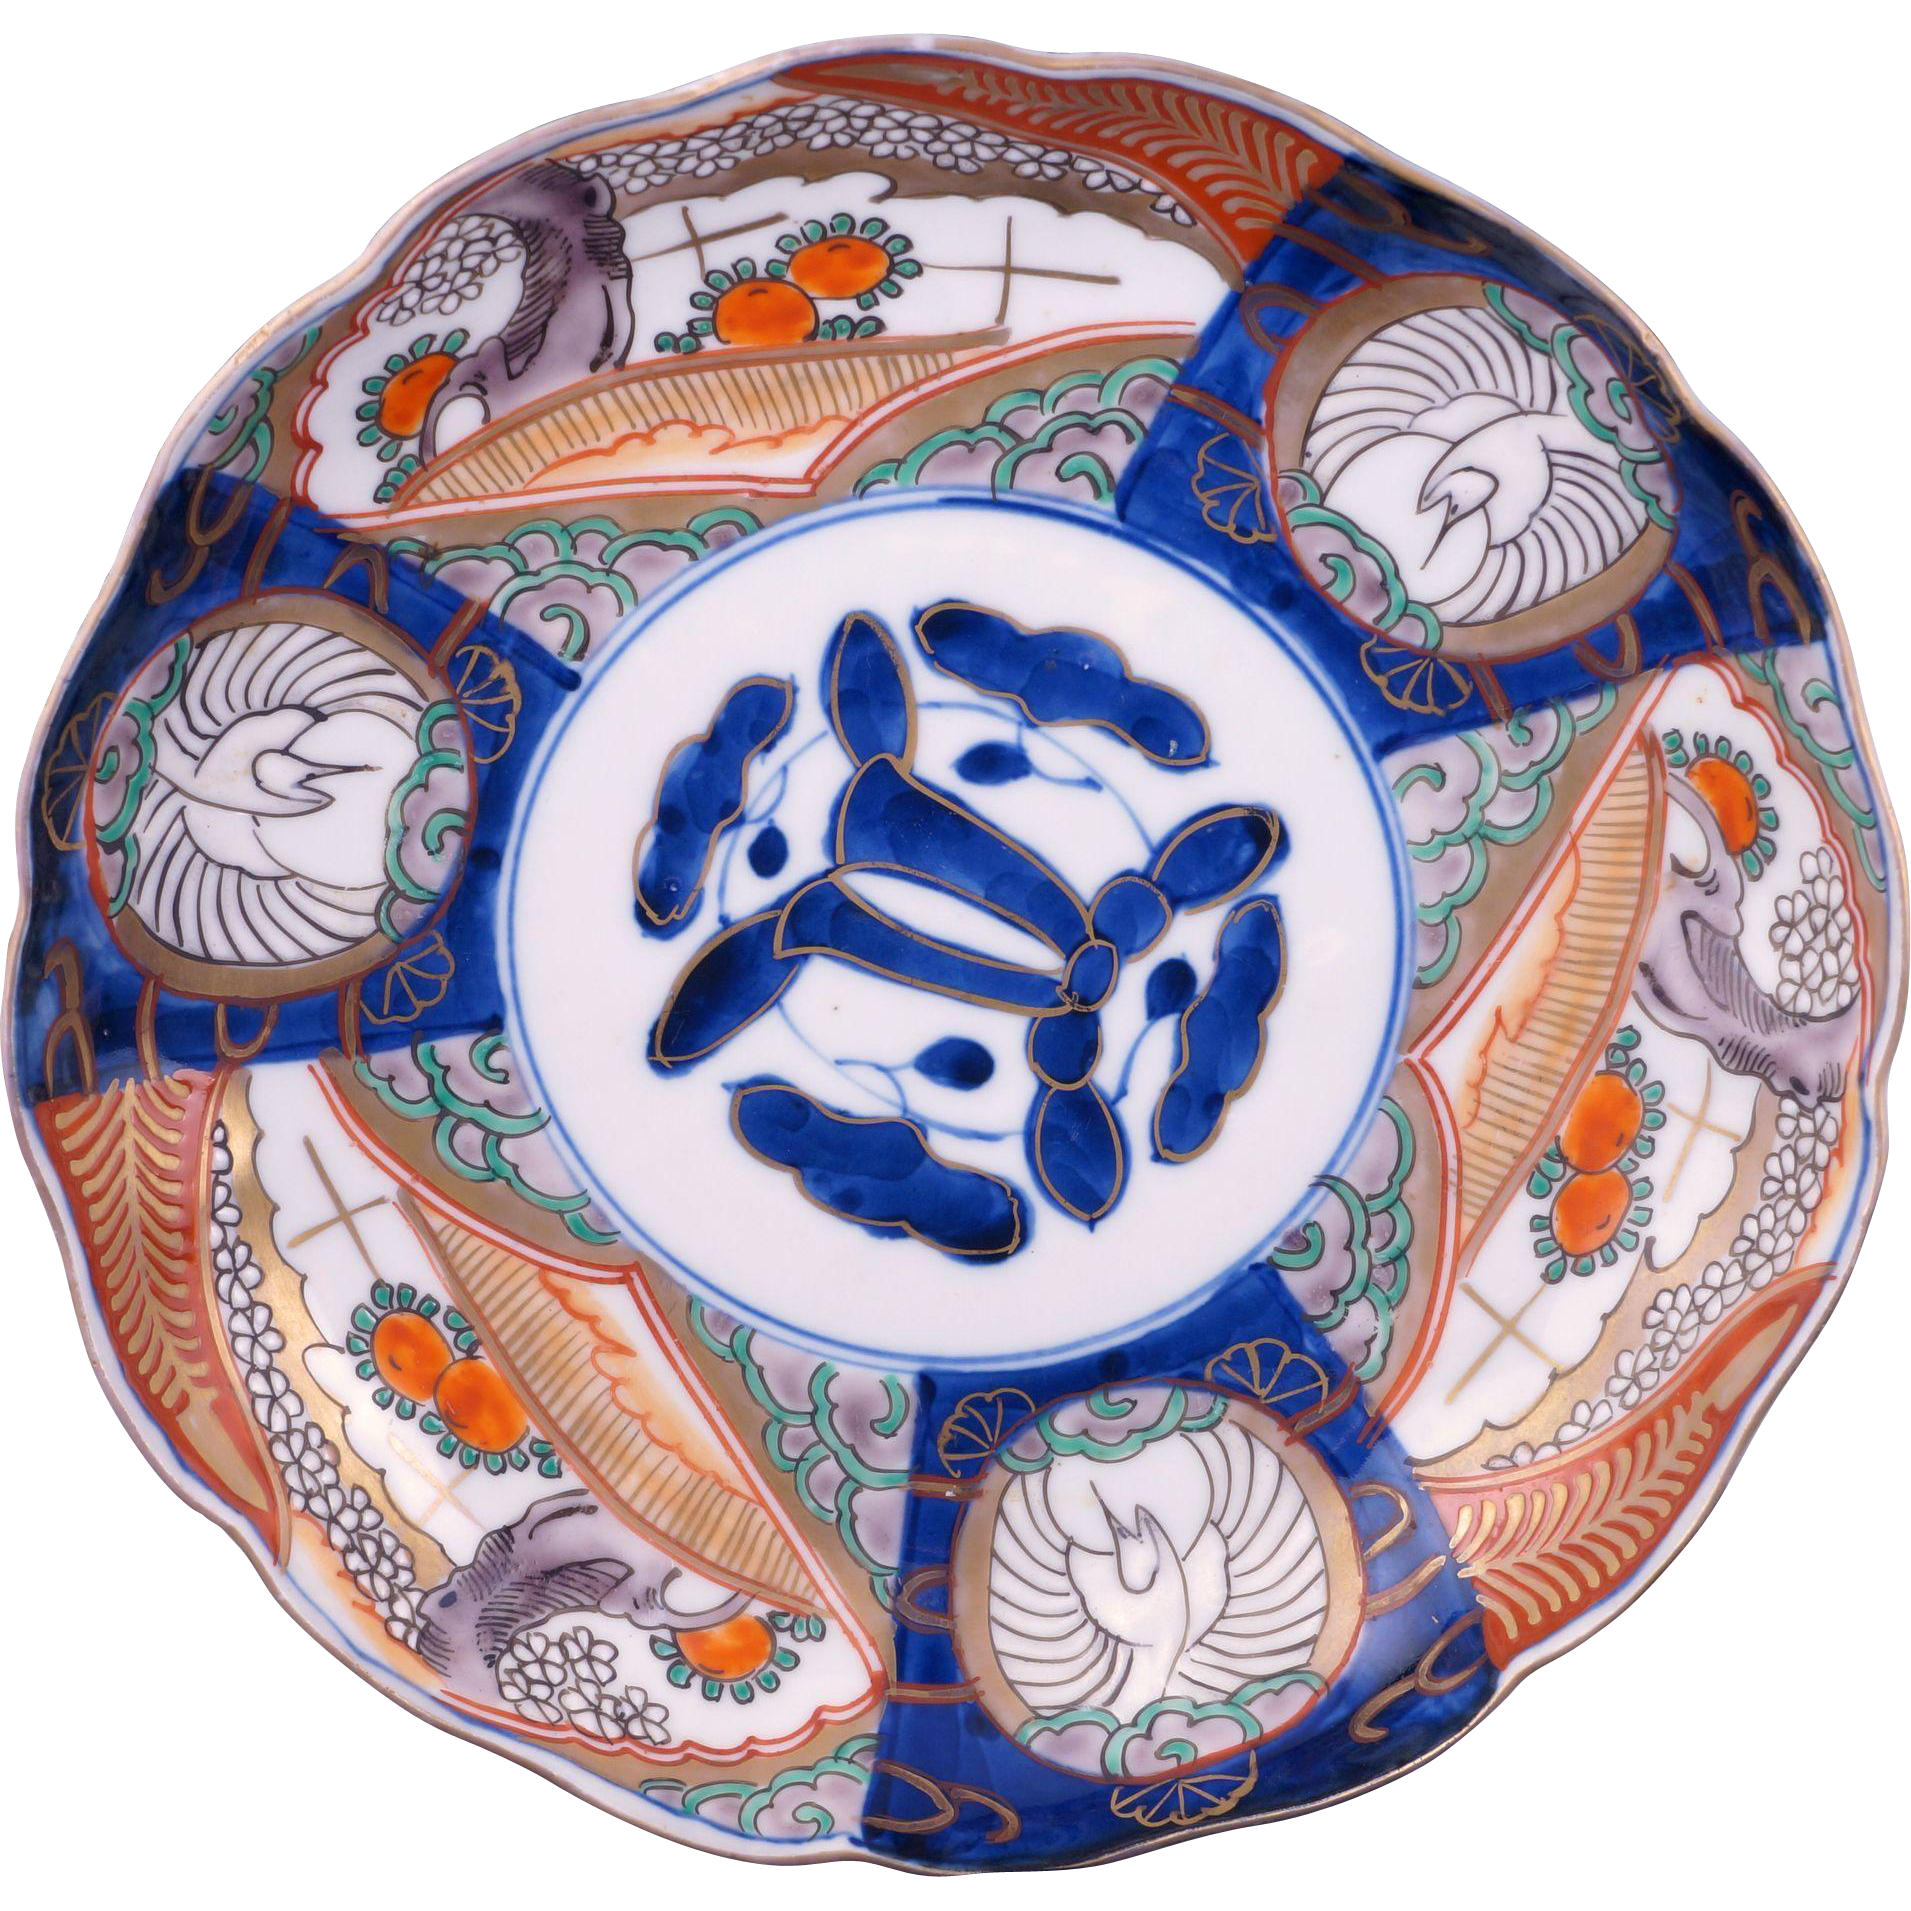 Japanese Antique colorful porcelain Imari plate with garden scenes Meiji Period from Bear \u0026 Raven on  sc 1 st  Pinterest & Japanese Antique colorful porcelain Imari plate with garden scenes ...